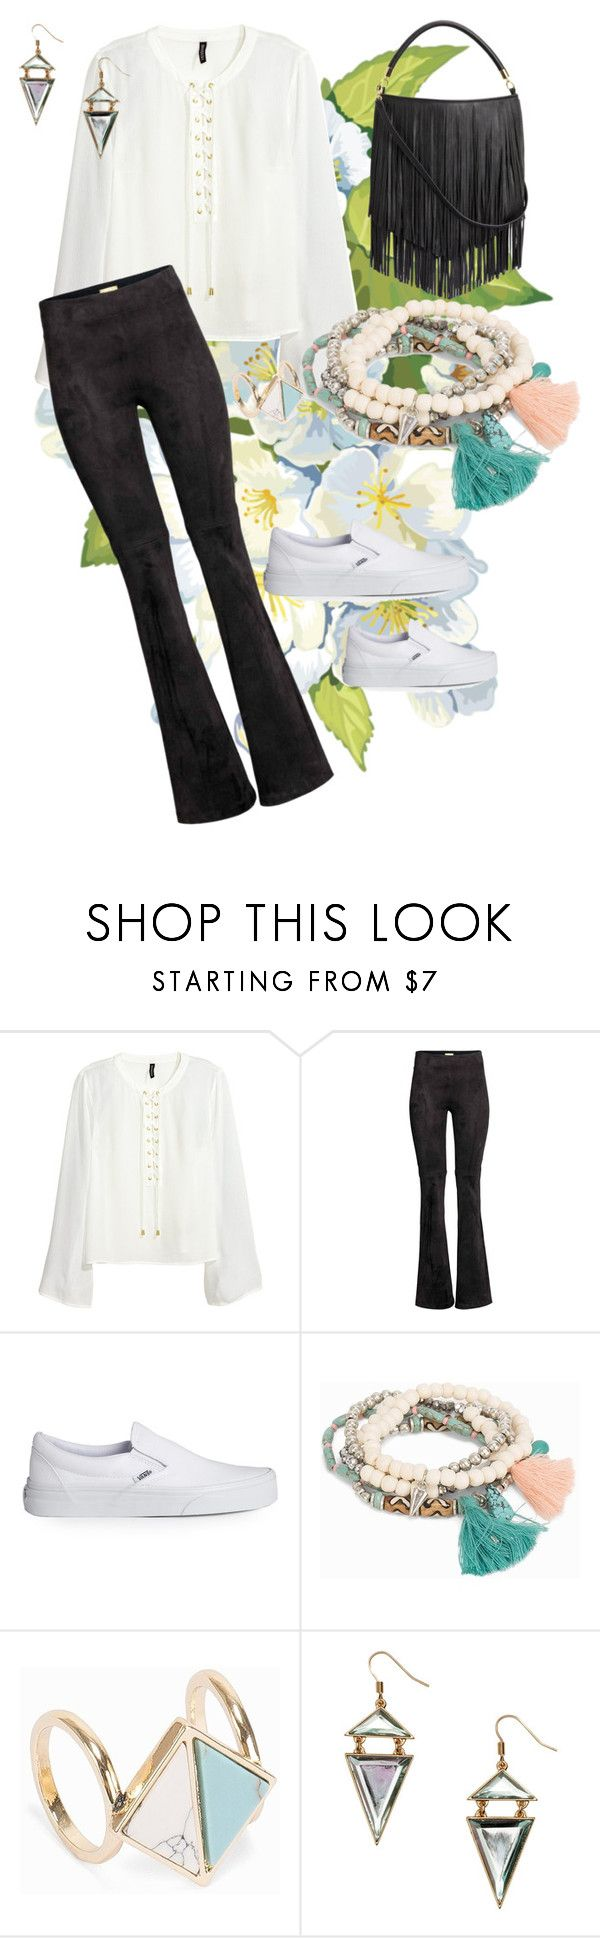 """""""sb-16"""" by louisesandstroms on Polyvore featuring H&M and Vans"""